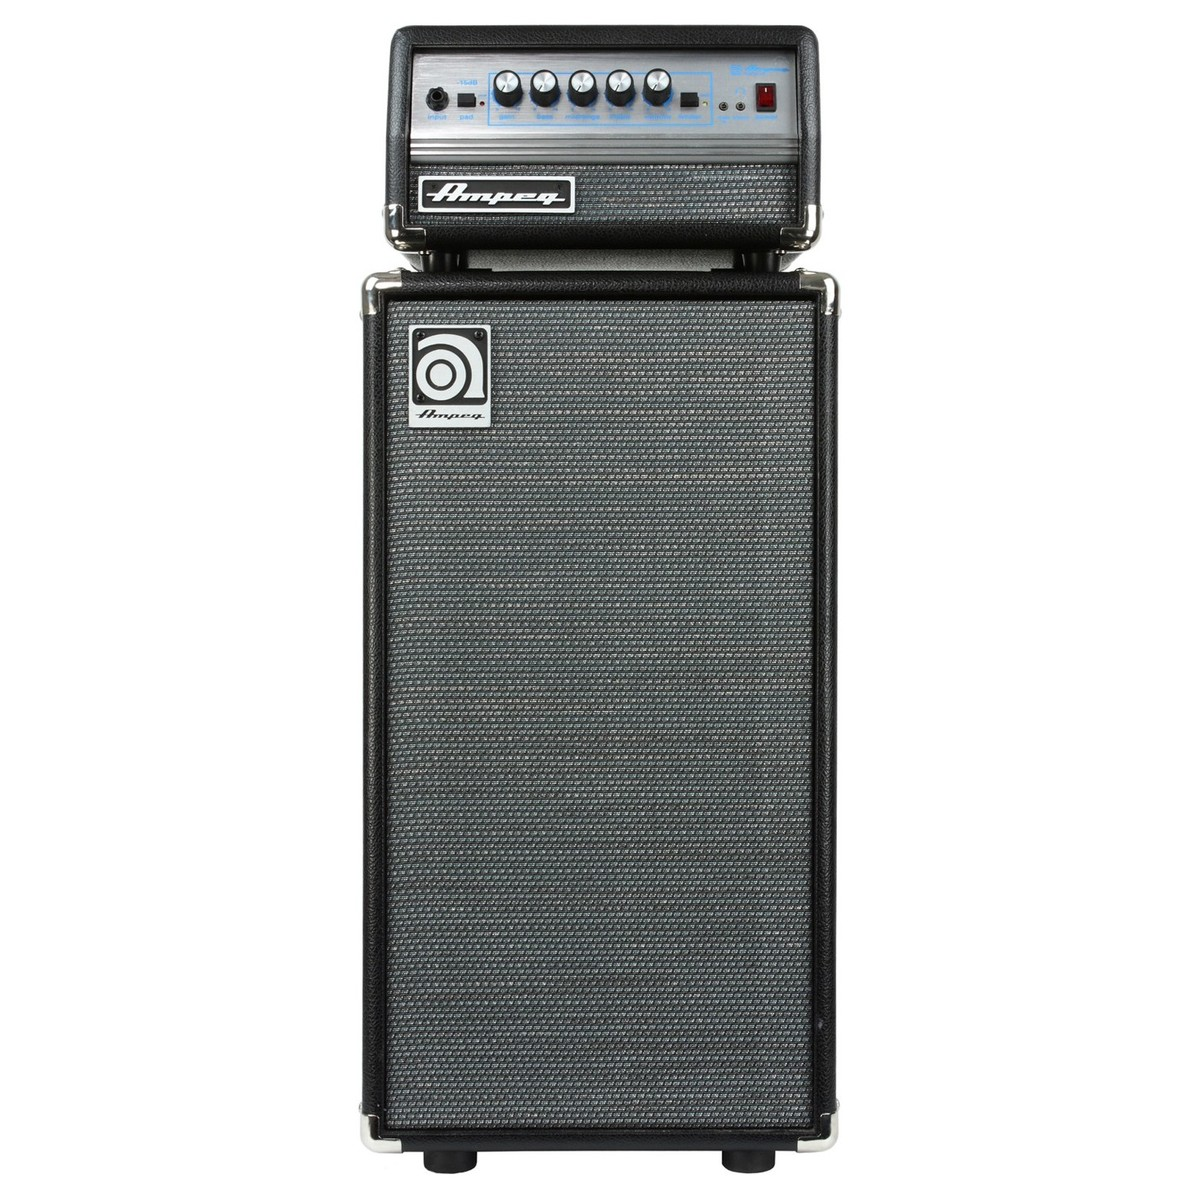 ampeg svt micro vr bass amp head and cab at gear4music. Black Bedroom Furniture Sets. Home Design Ideas